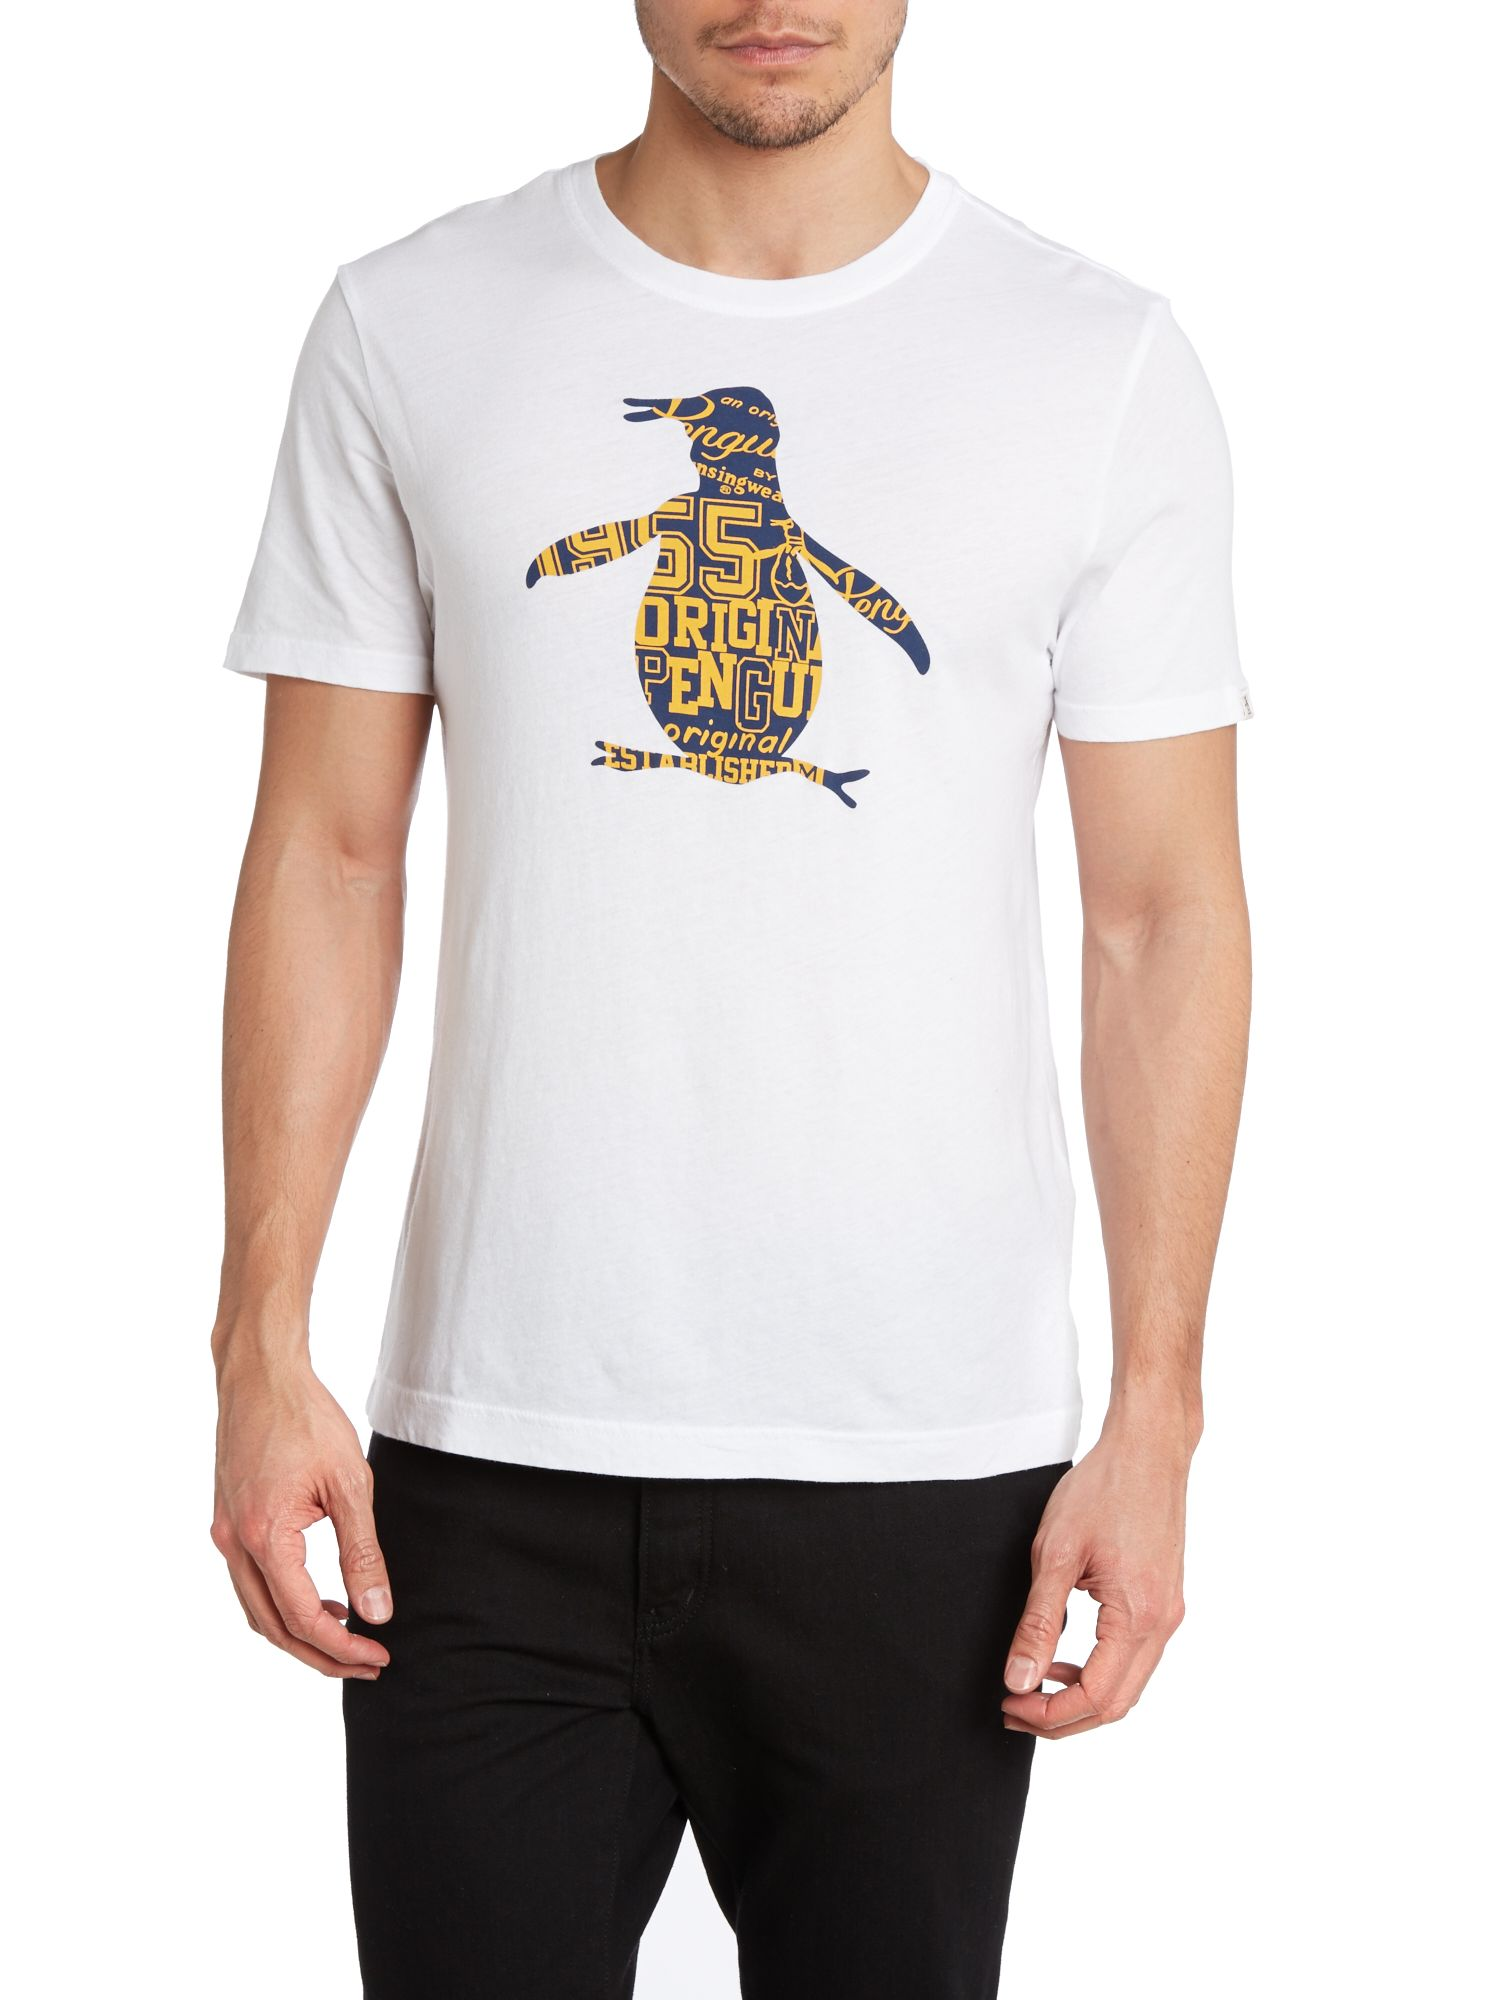 College penguin t shirt